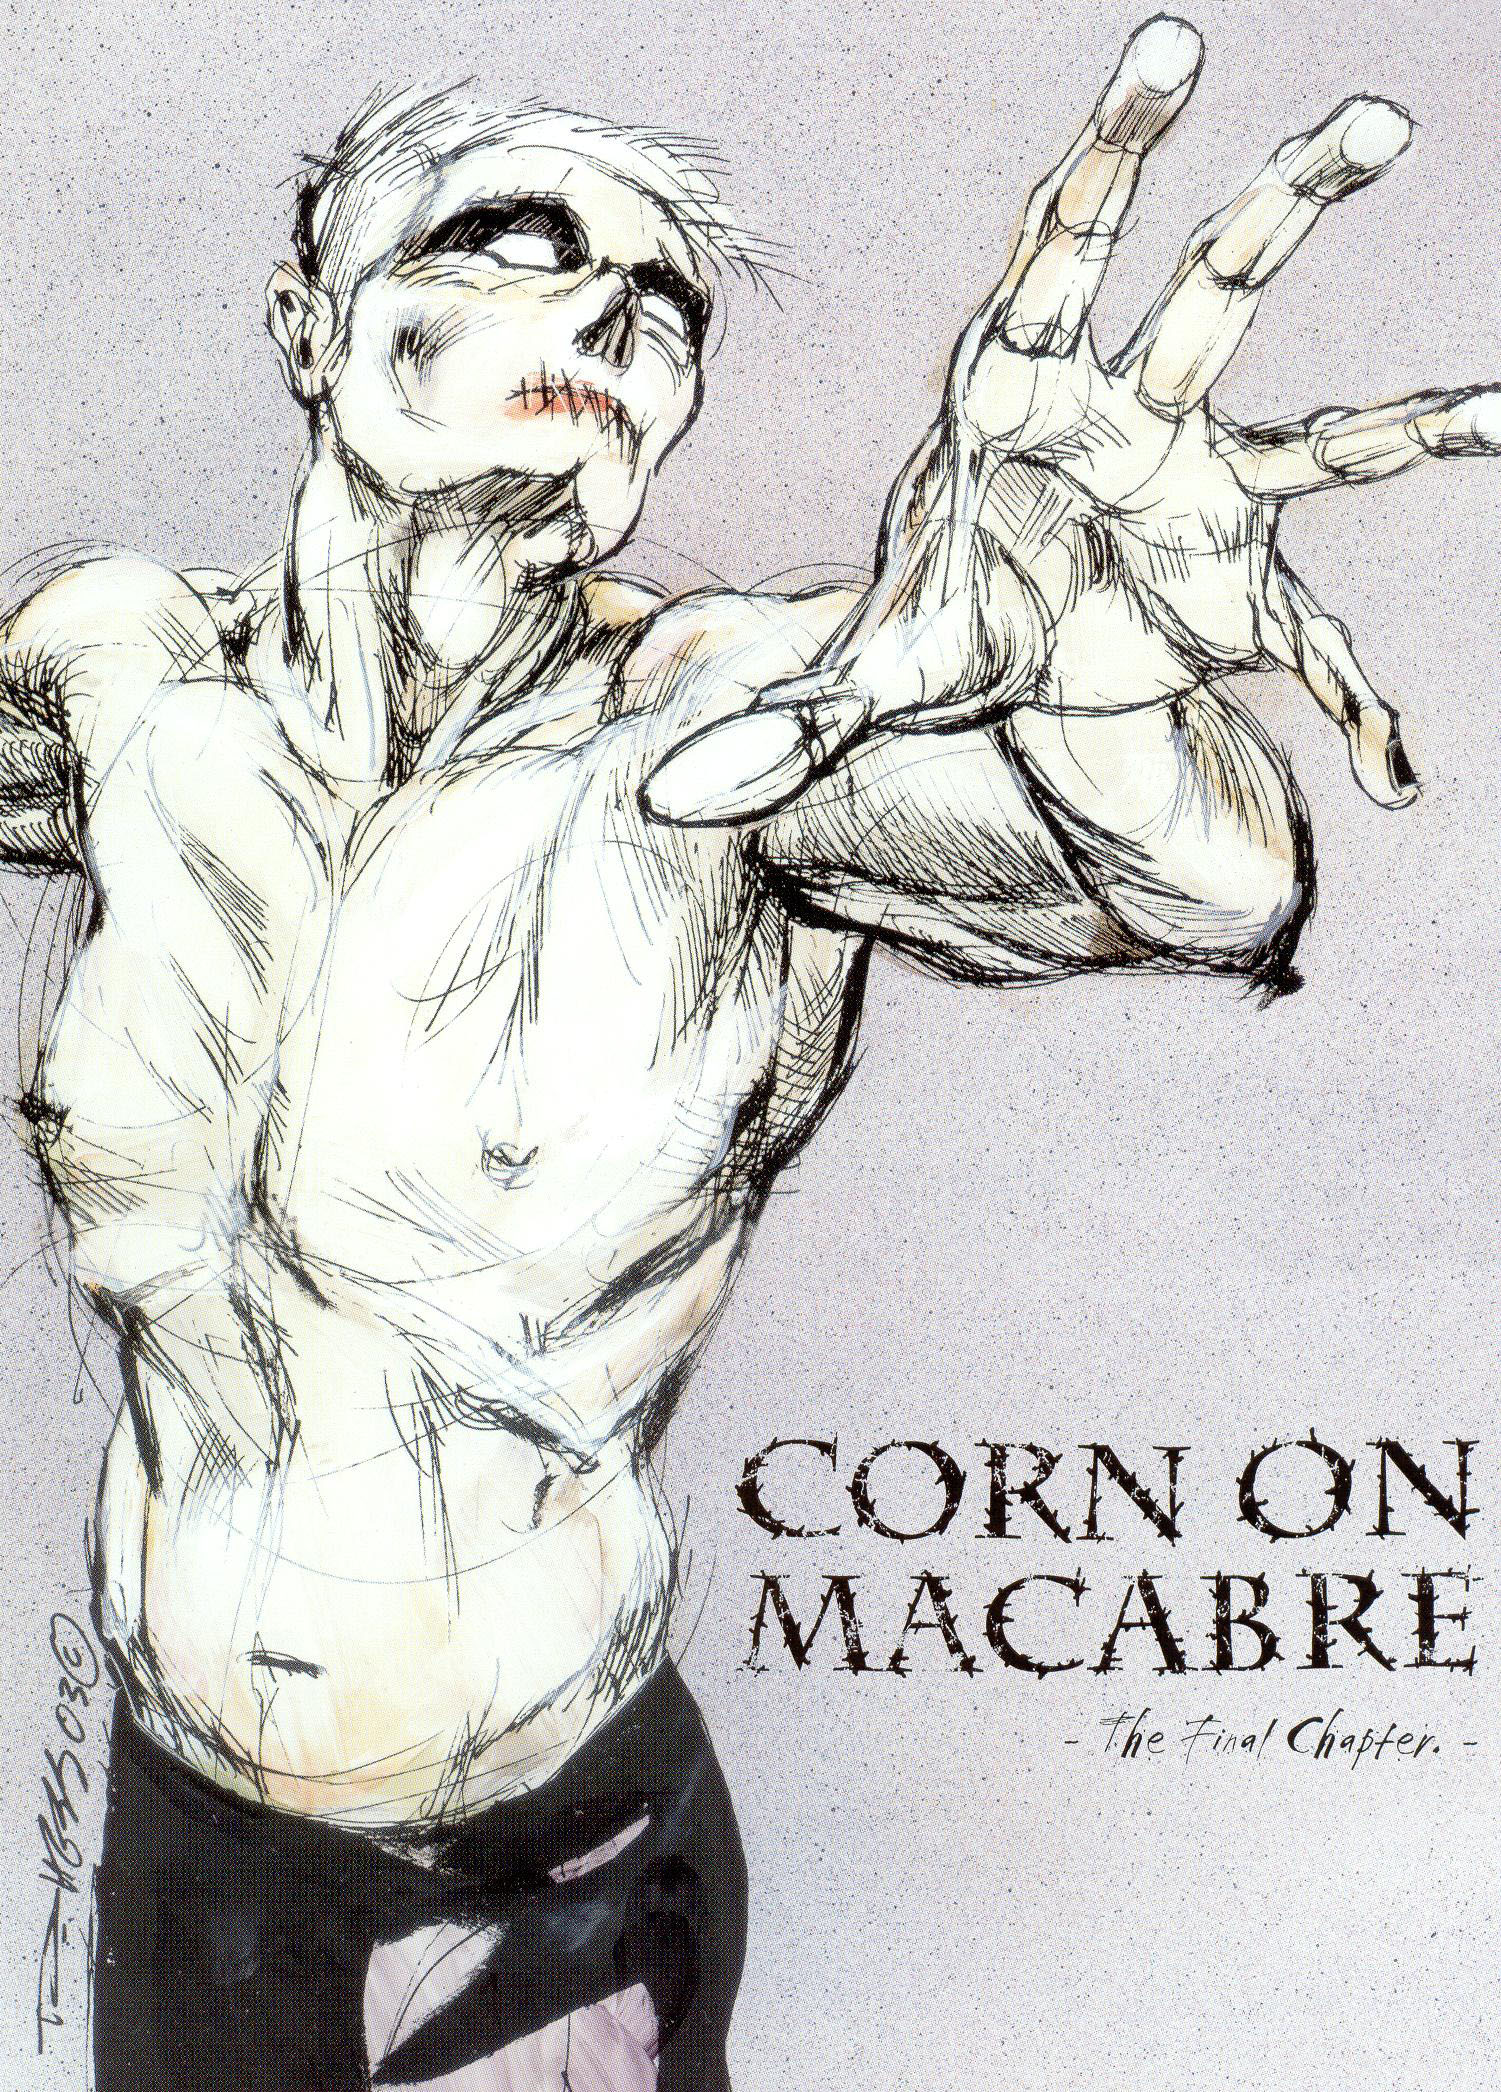 Corn on Macabre: The Final Chapter